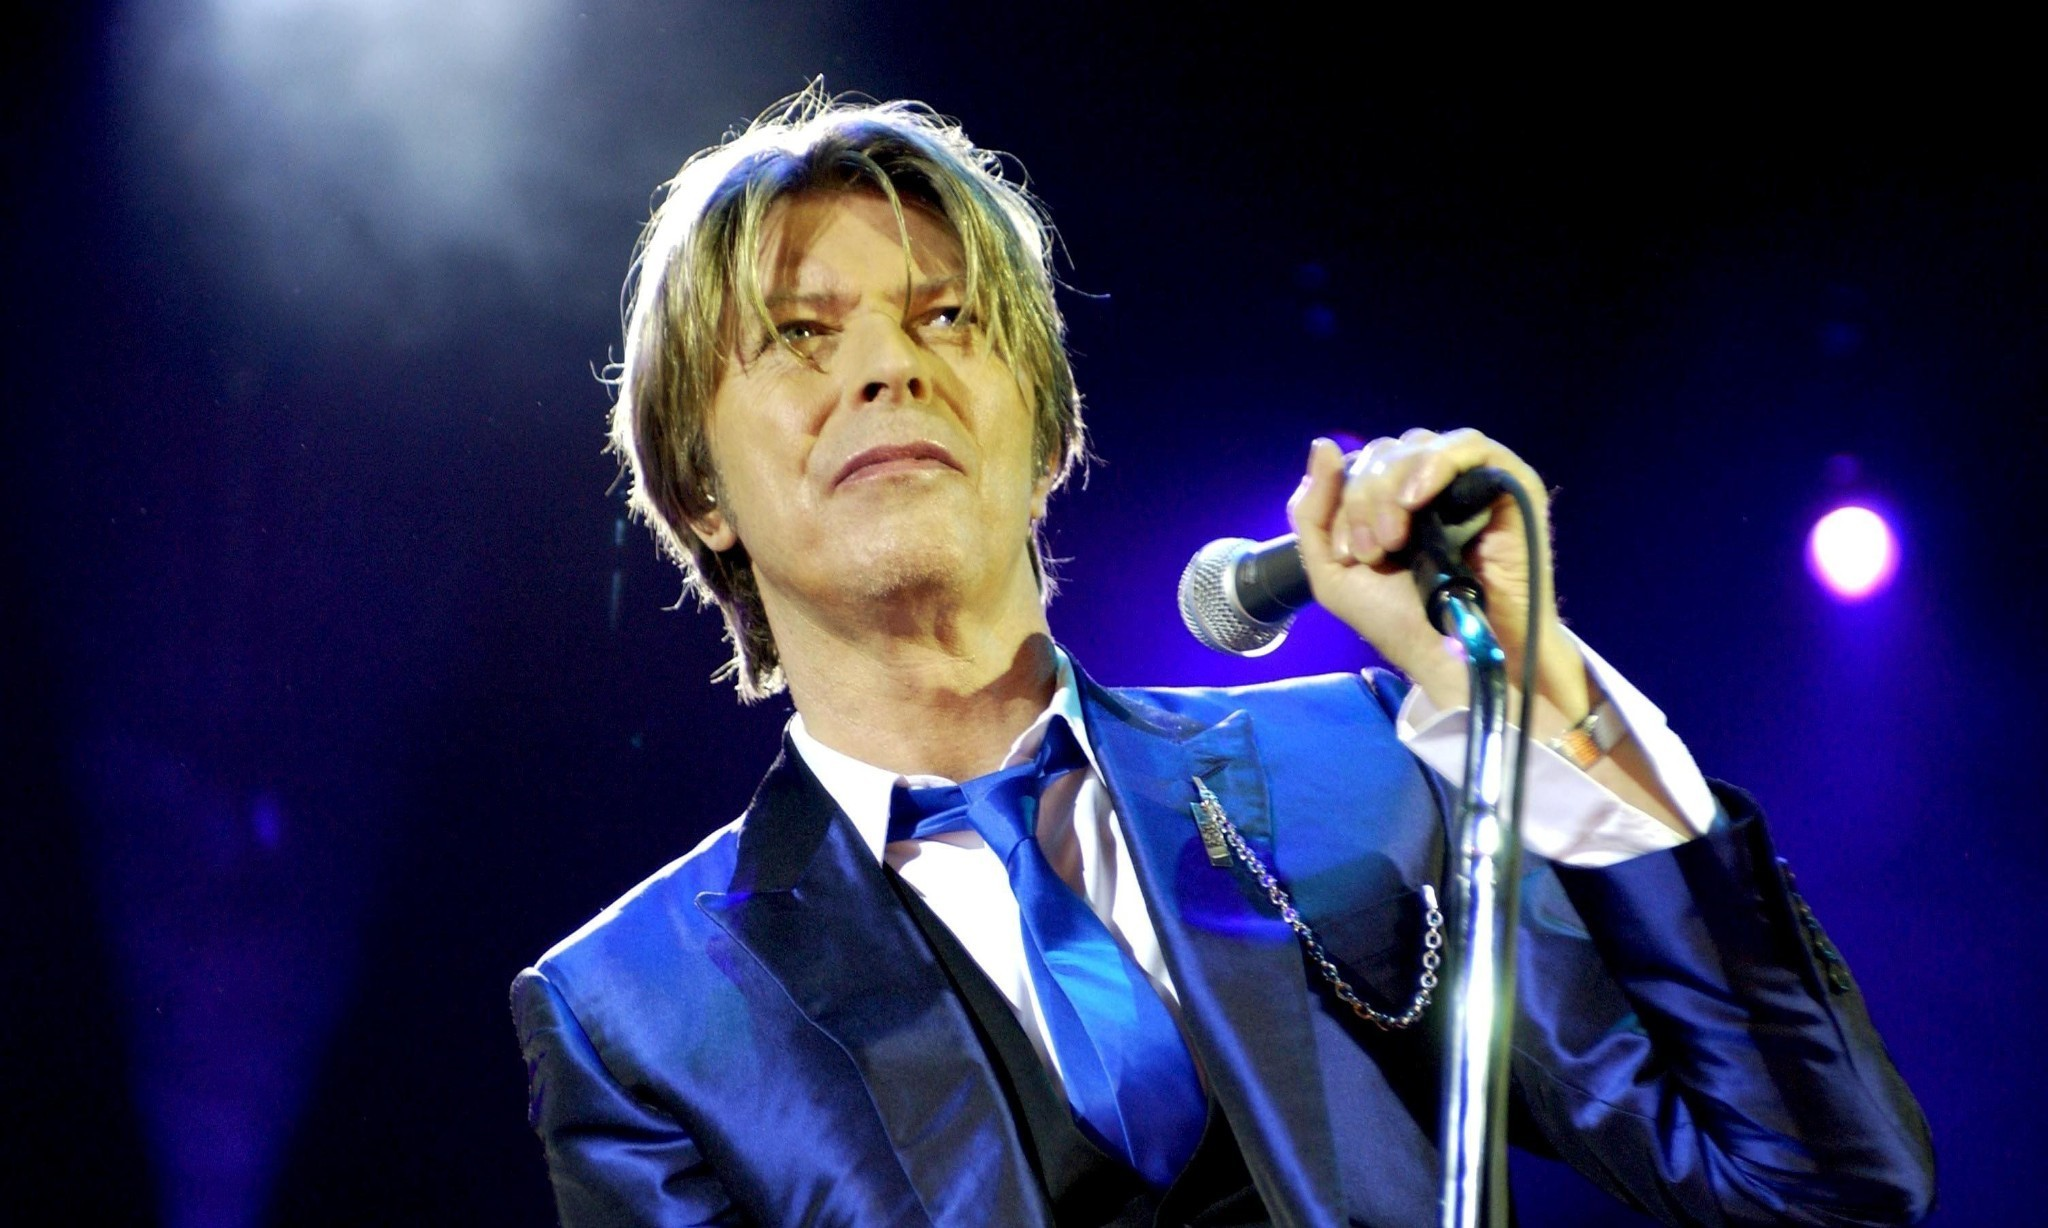 David Bowie: Back in the spotlight, still refusing to play along